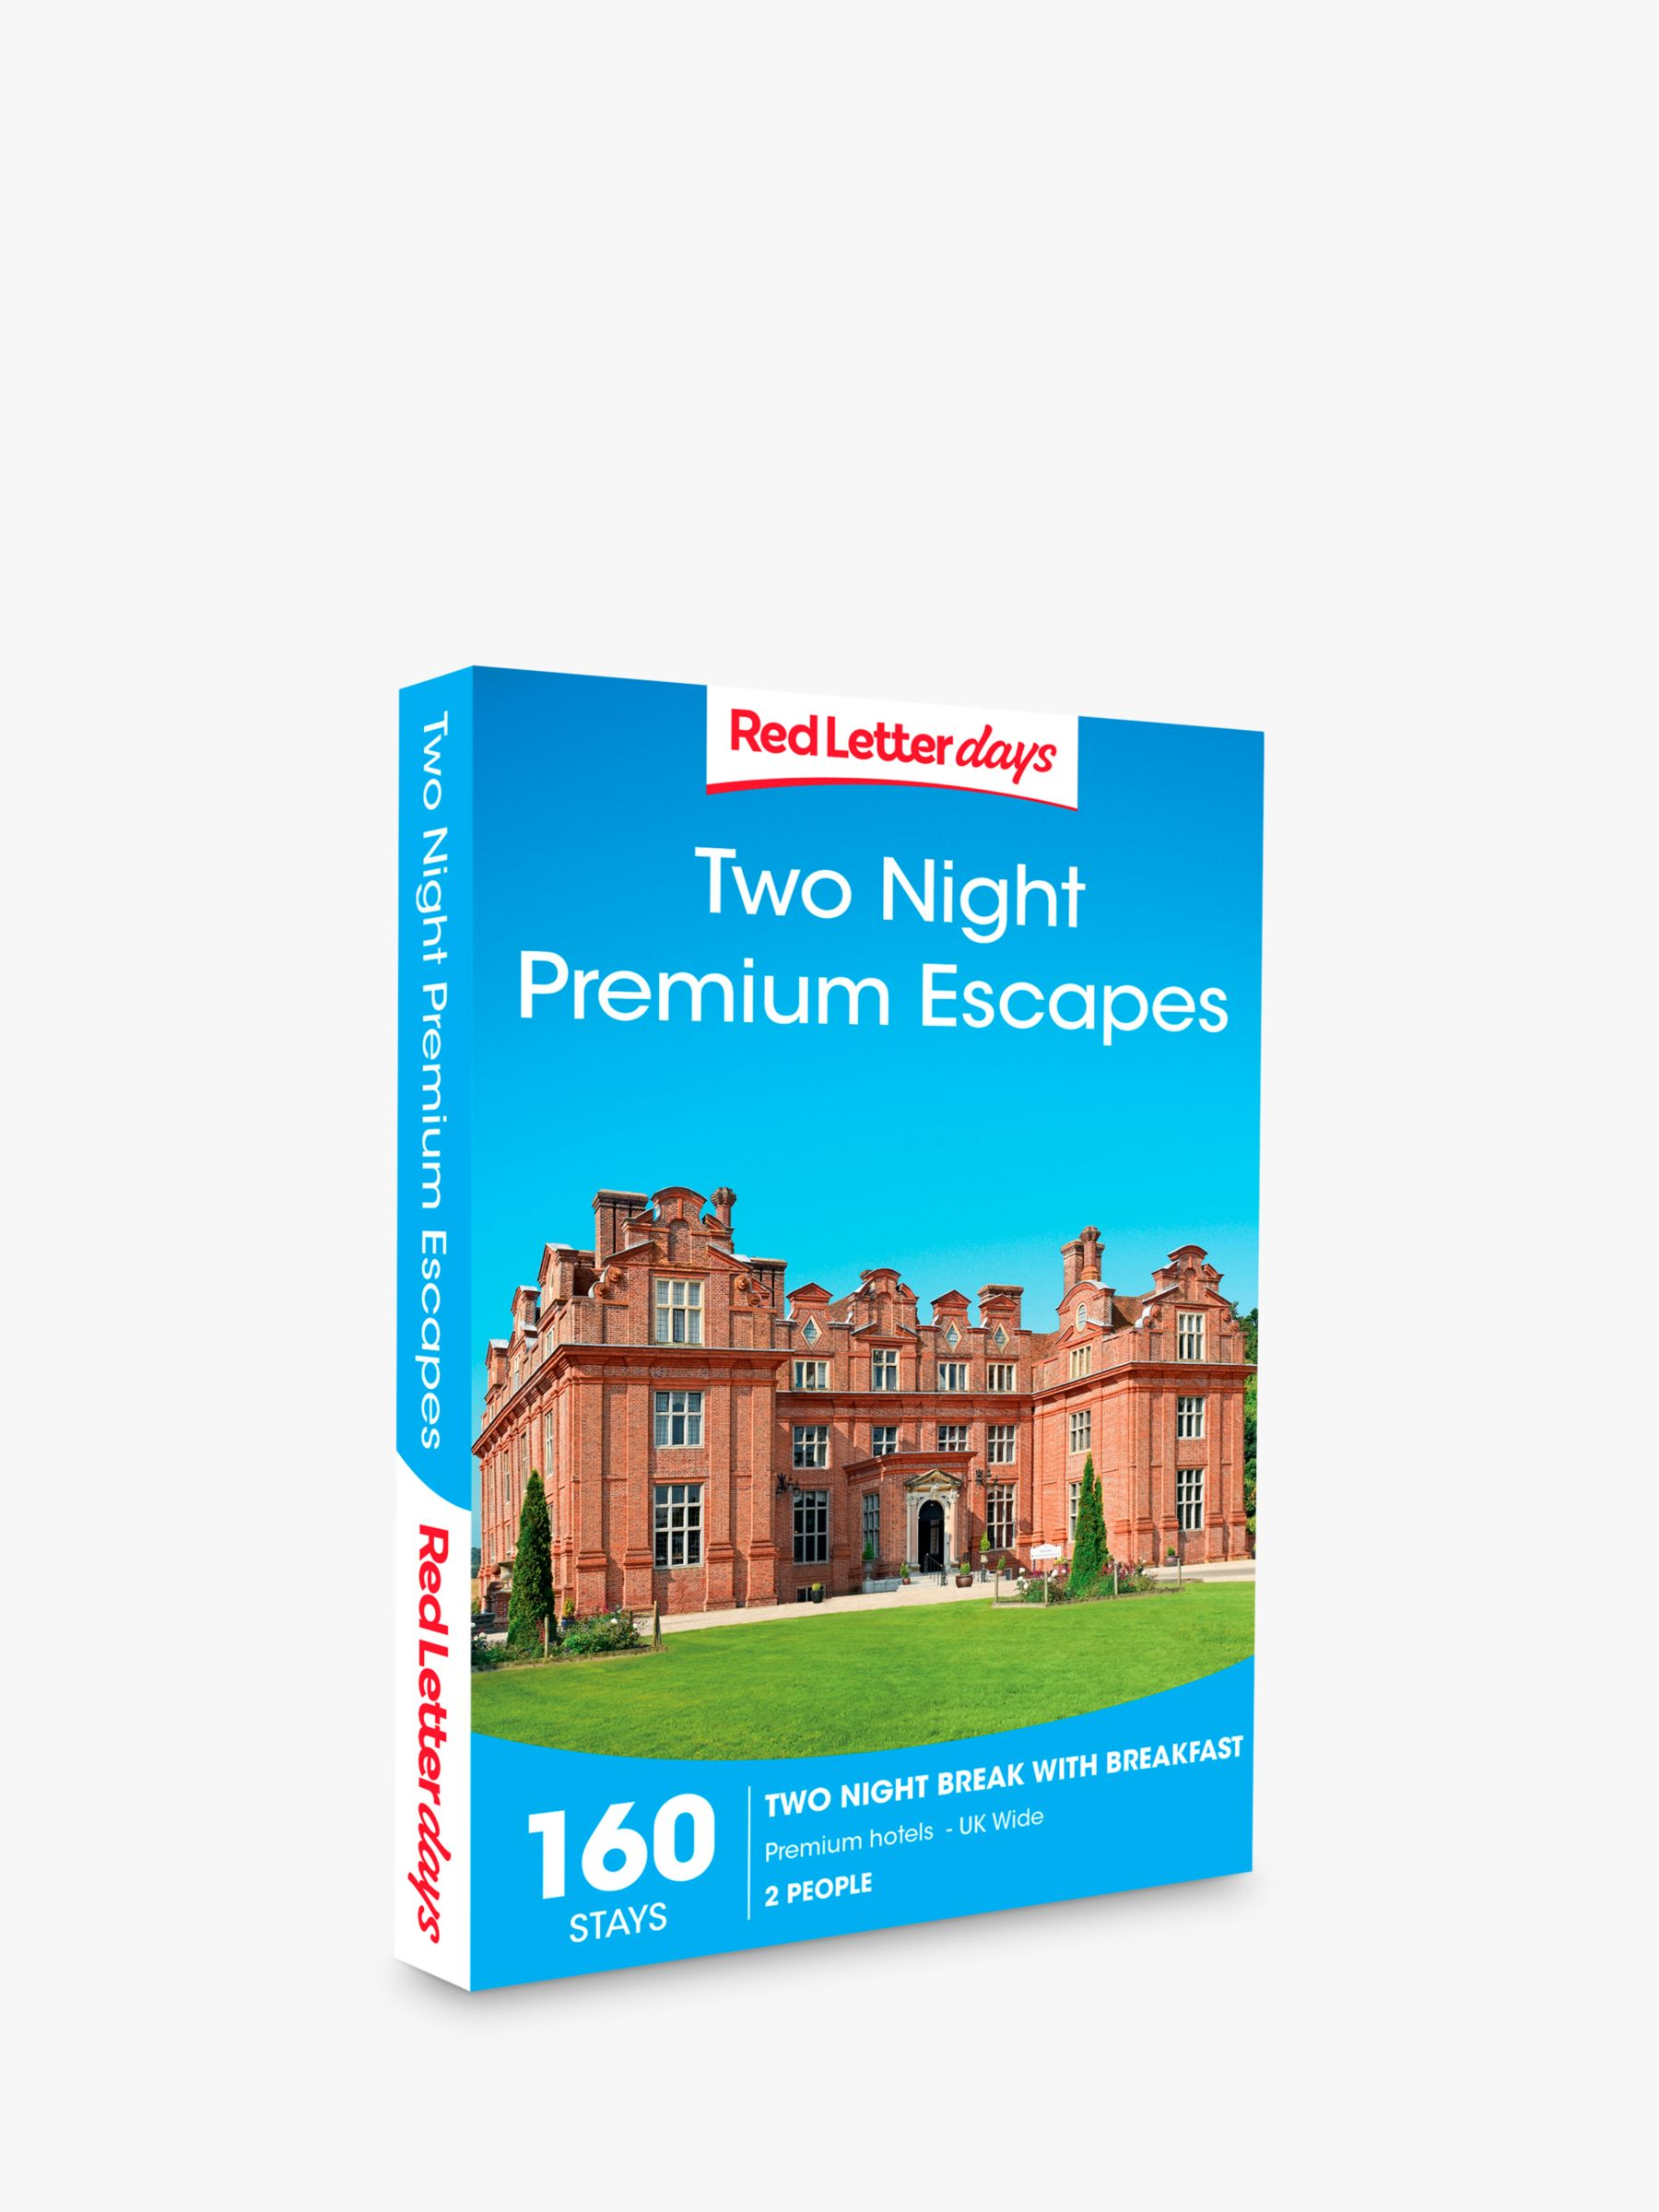 Red Letter Days Red Letter Days Two Night Premium Escapes Gift Experience